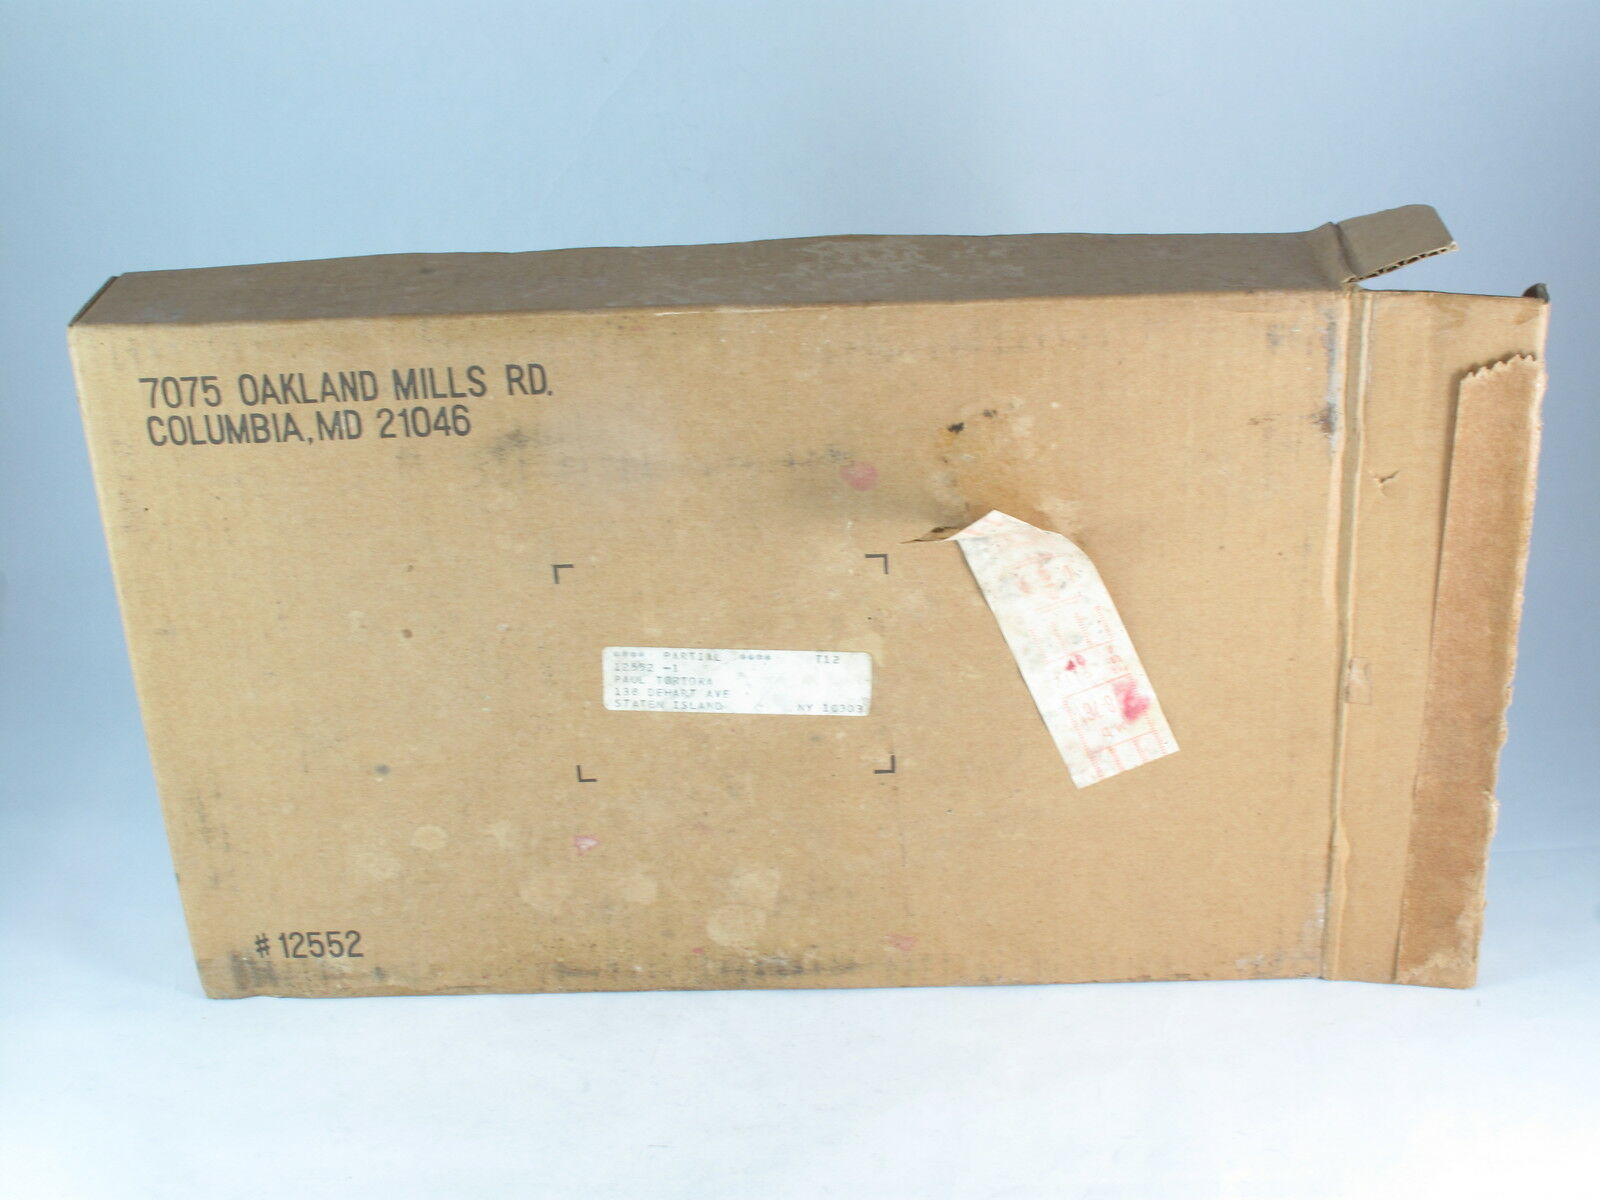 Transformers G1 Megatron Boxed Mail Order Good Condition Condition Condition Original 1986 b21b06